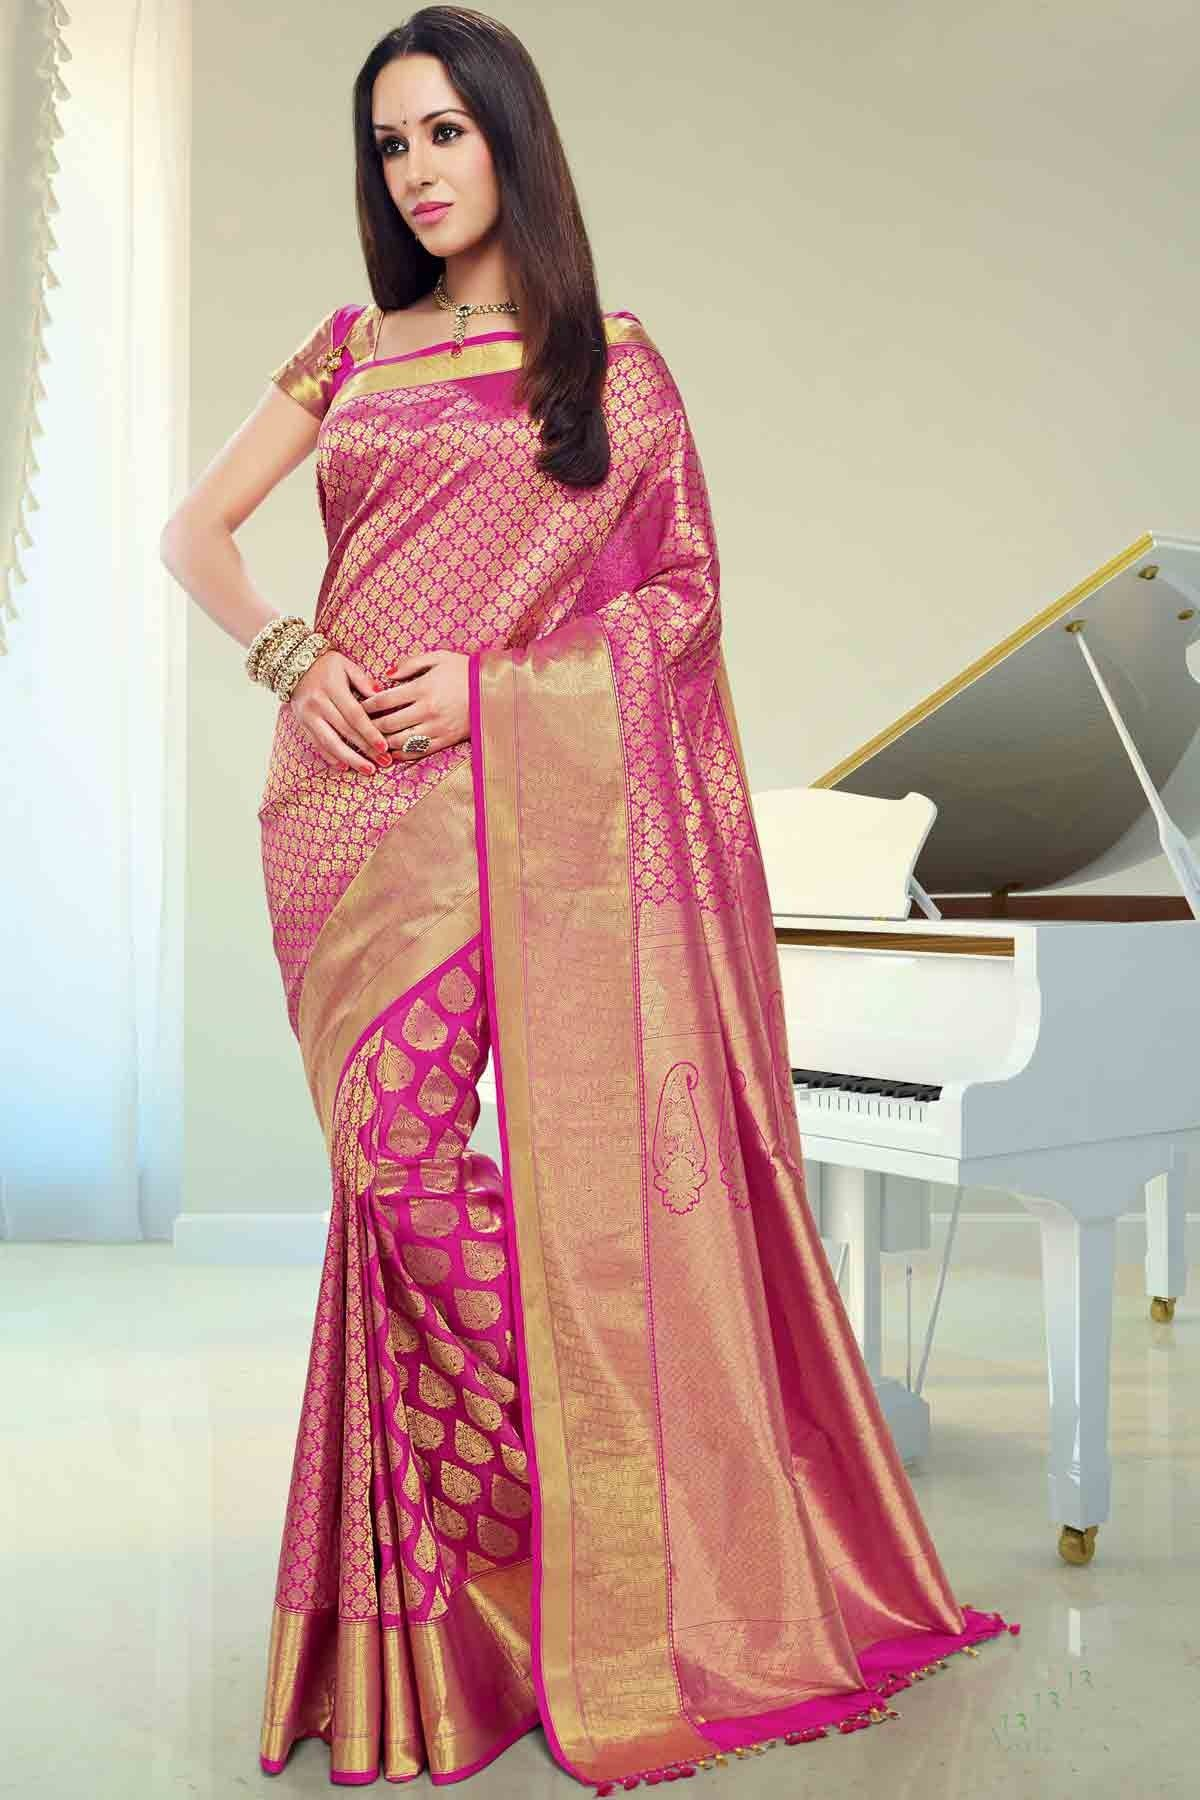 792ee2be4a8e Pink Silk brocade Zari weaved Saree in golden border for Wedding Online  Shopping